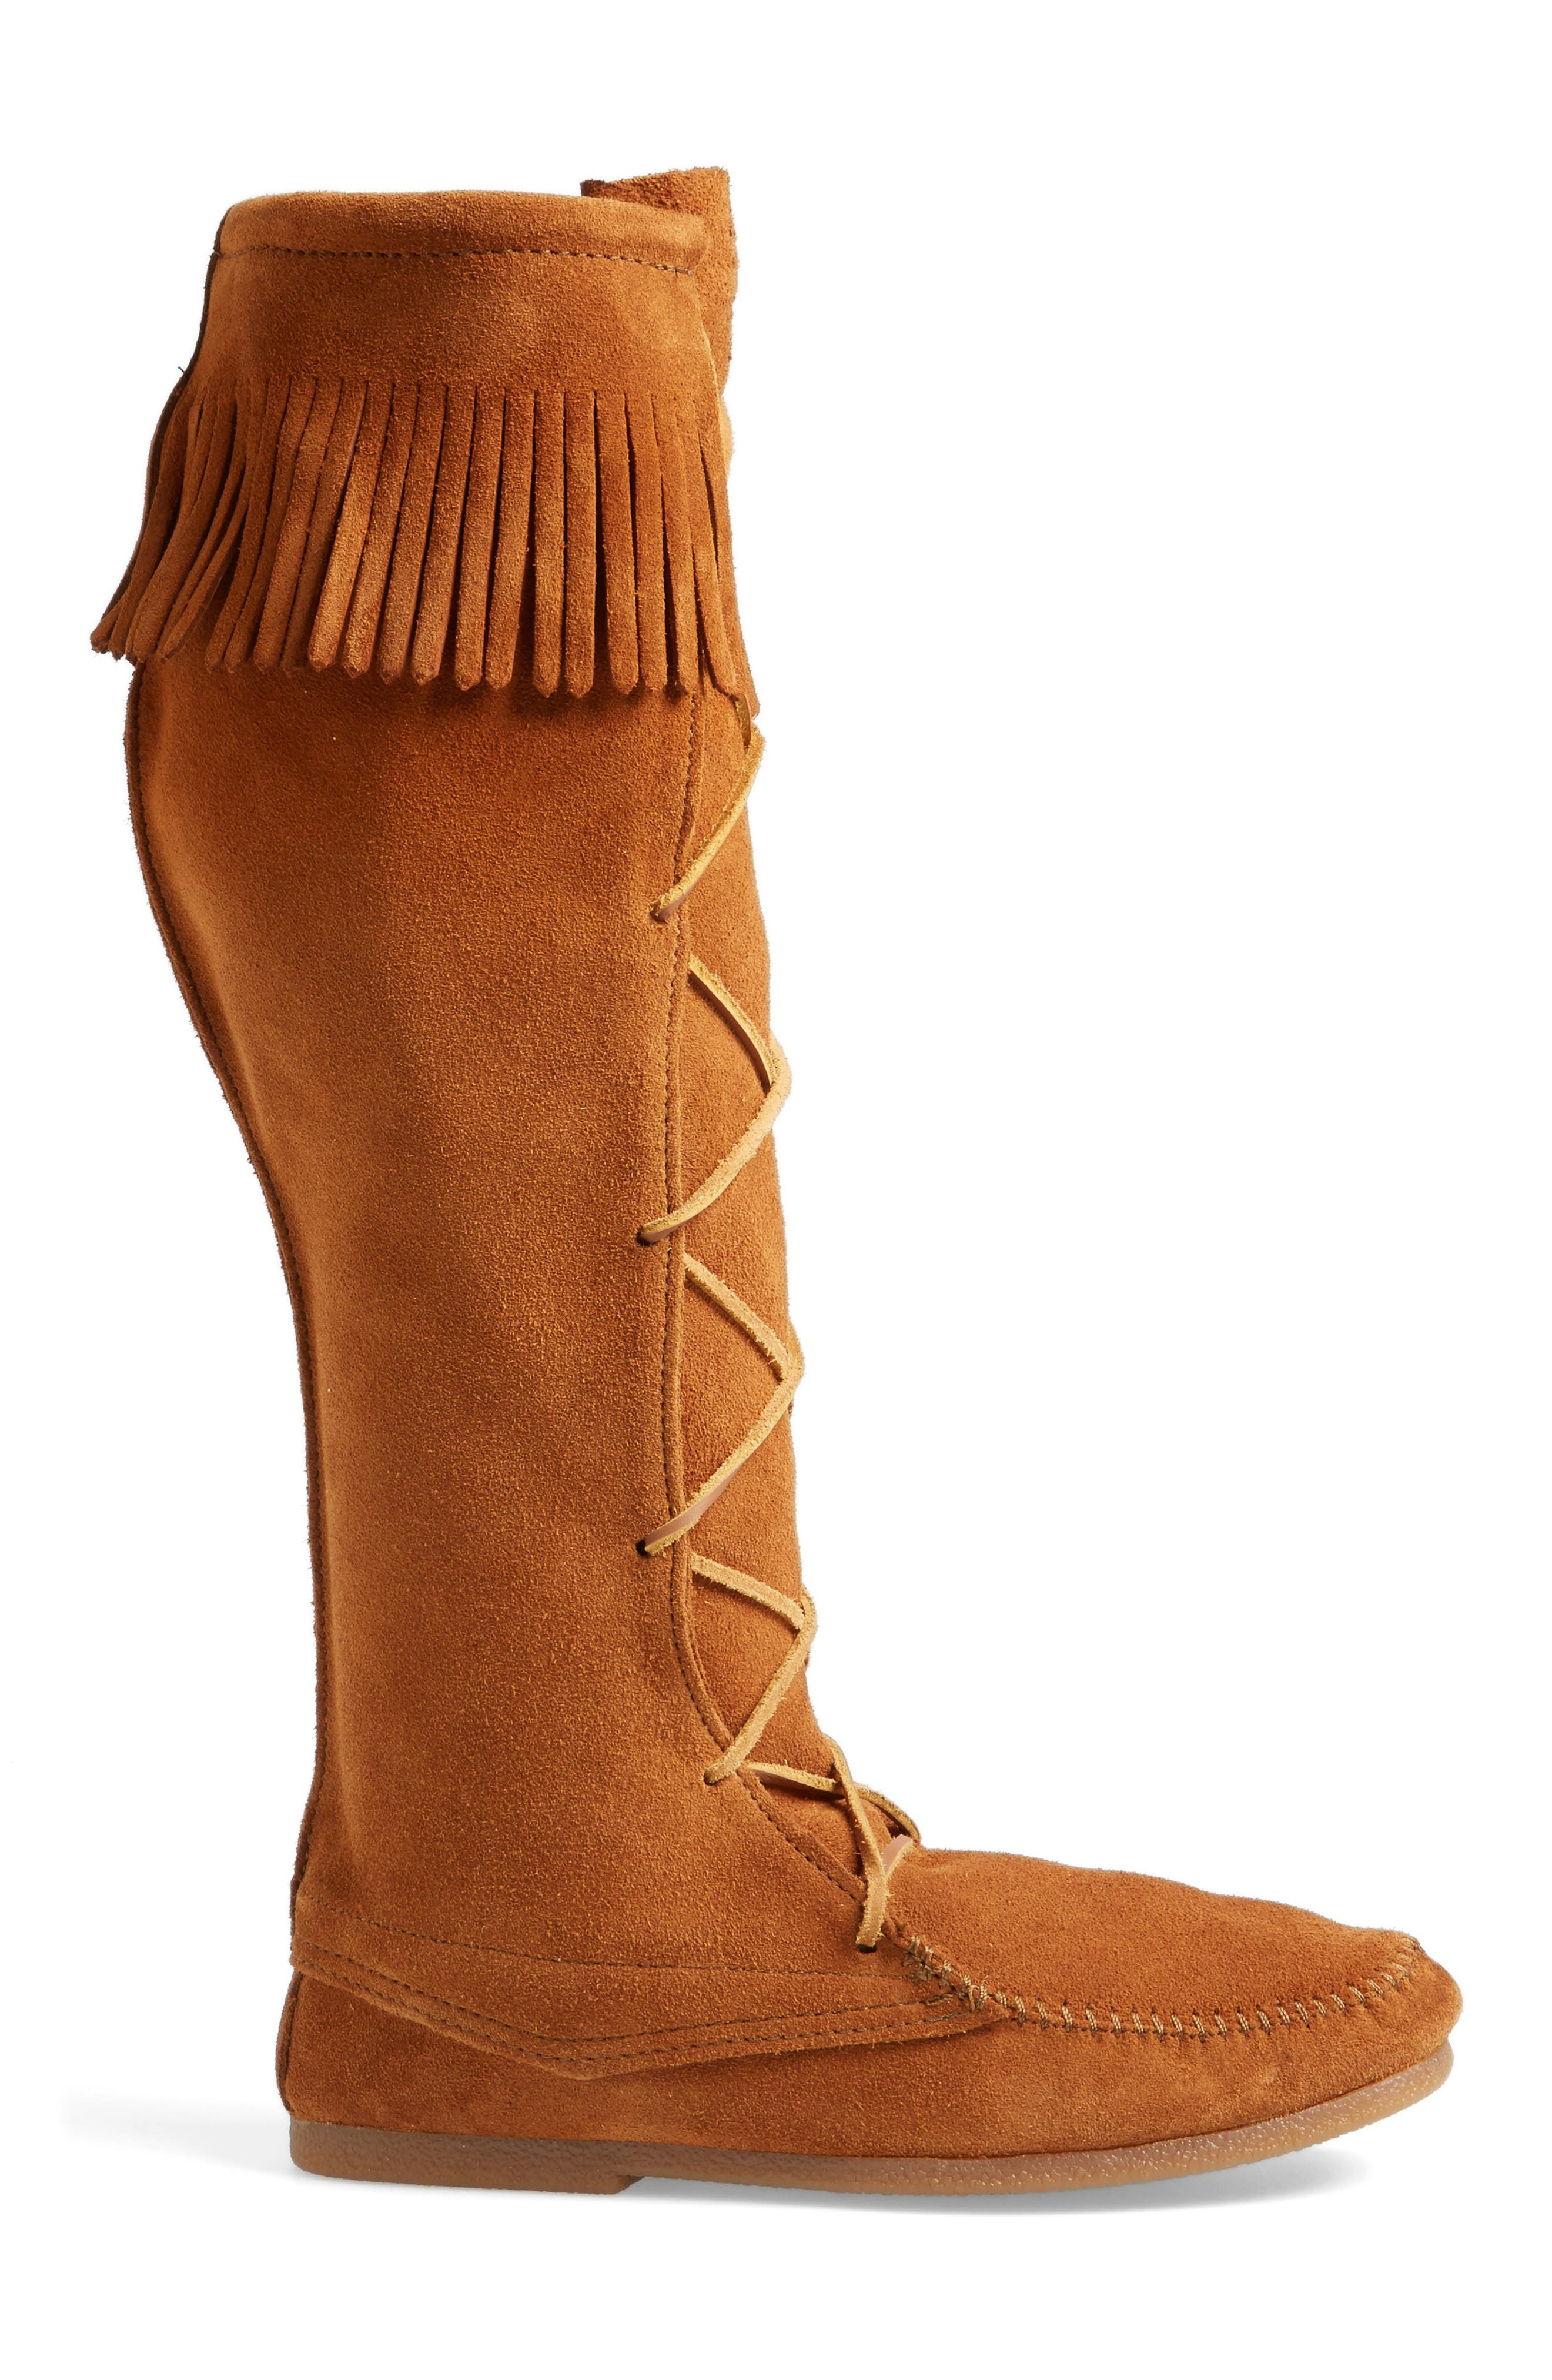 Knee High Moccasin Boot,                             Alternate thumbnail 3, color,                             Brown Suede